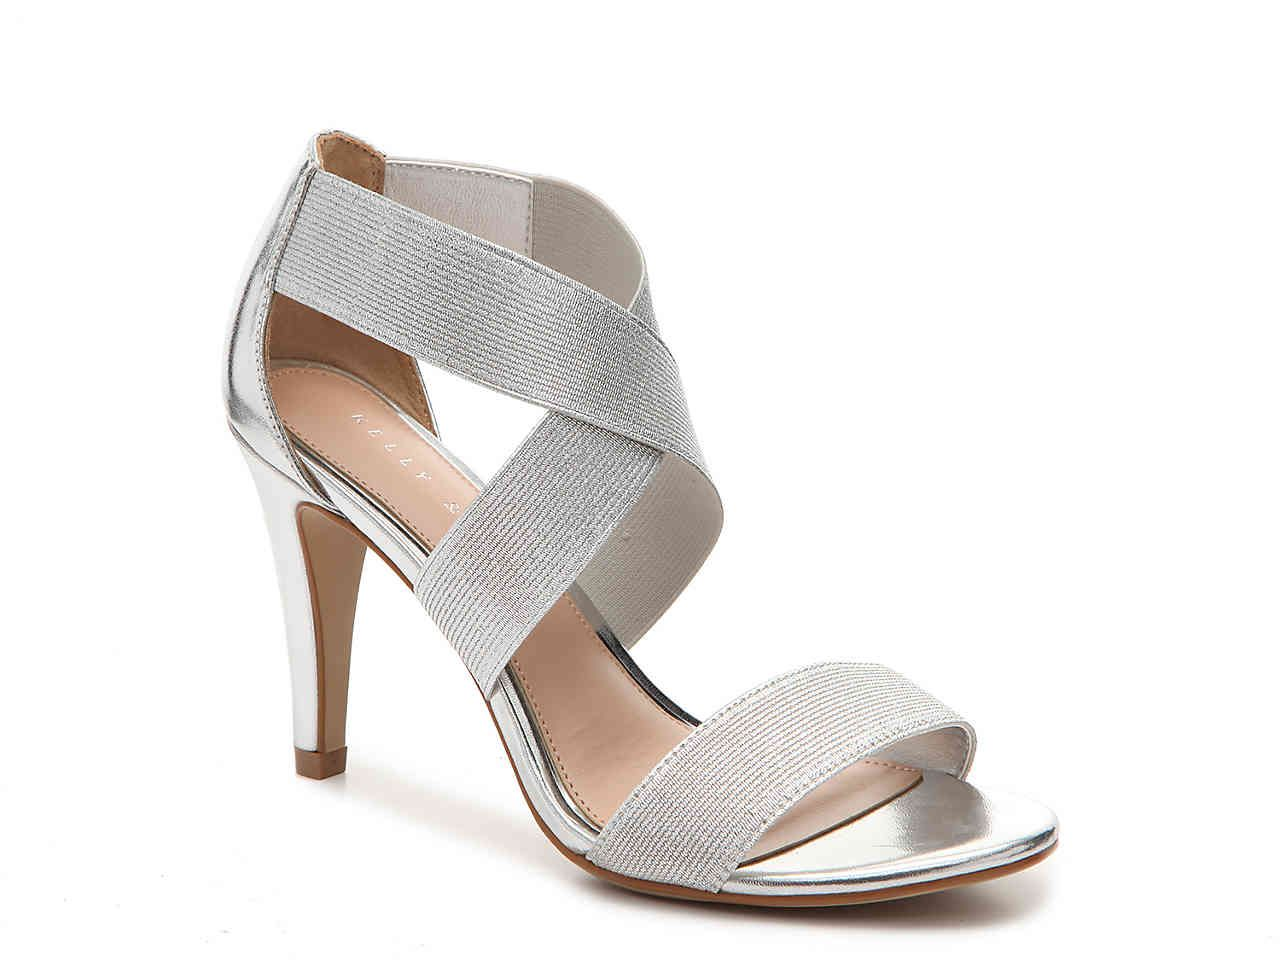 e35170c9a9f  DSW Kelly   Katie - Larinia Sandal. Find this Pin and more on Wedding  Shoes by Katie Koster. Tags. Silver Mid Heels